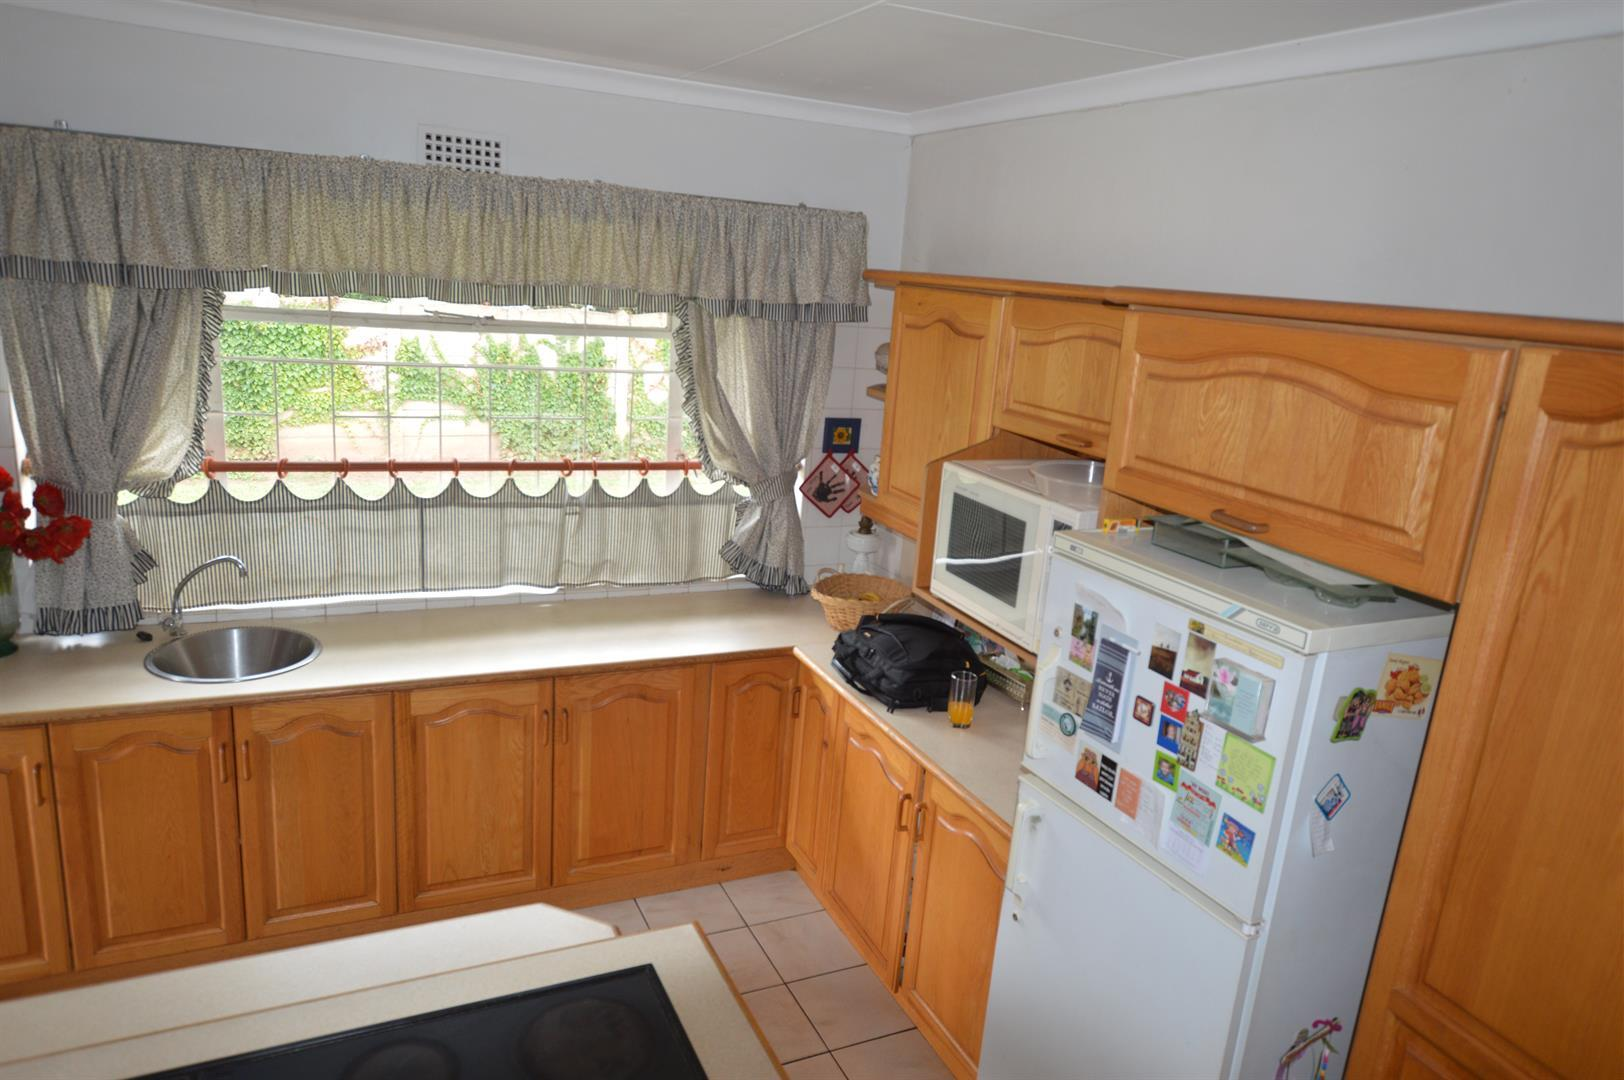 Vanderbijlpark Sw 5 property for sale. Ref No: 13443705. Picture no 7